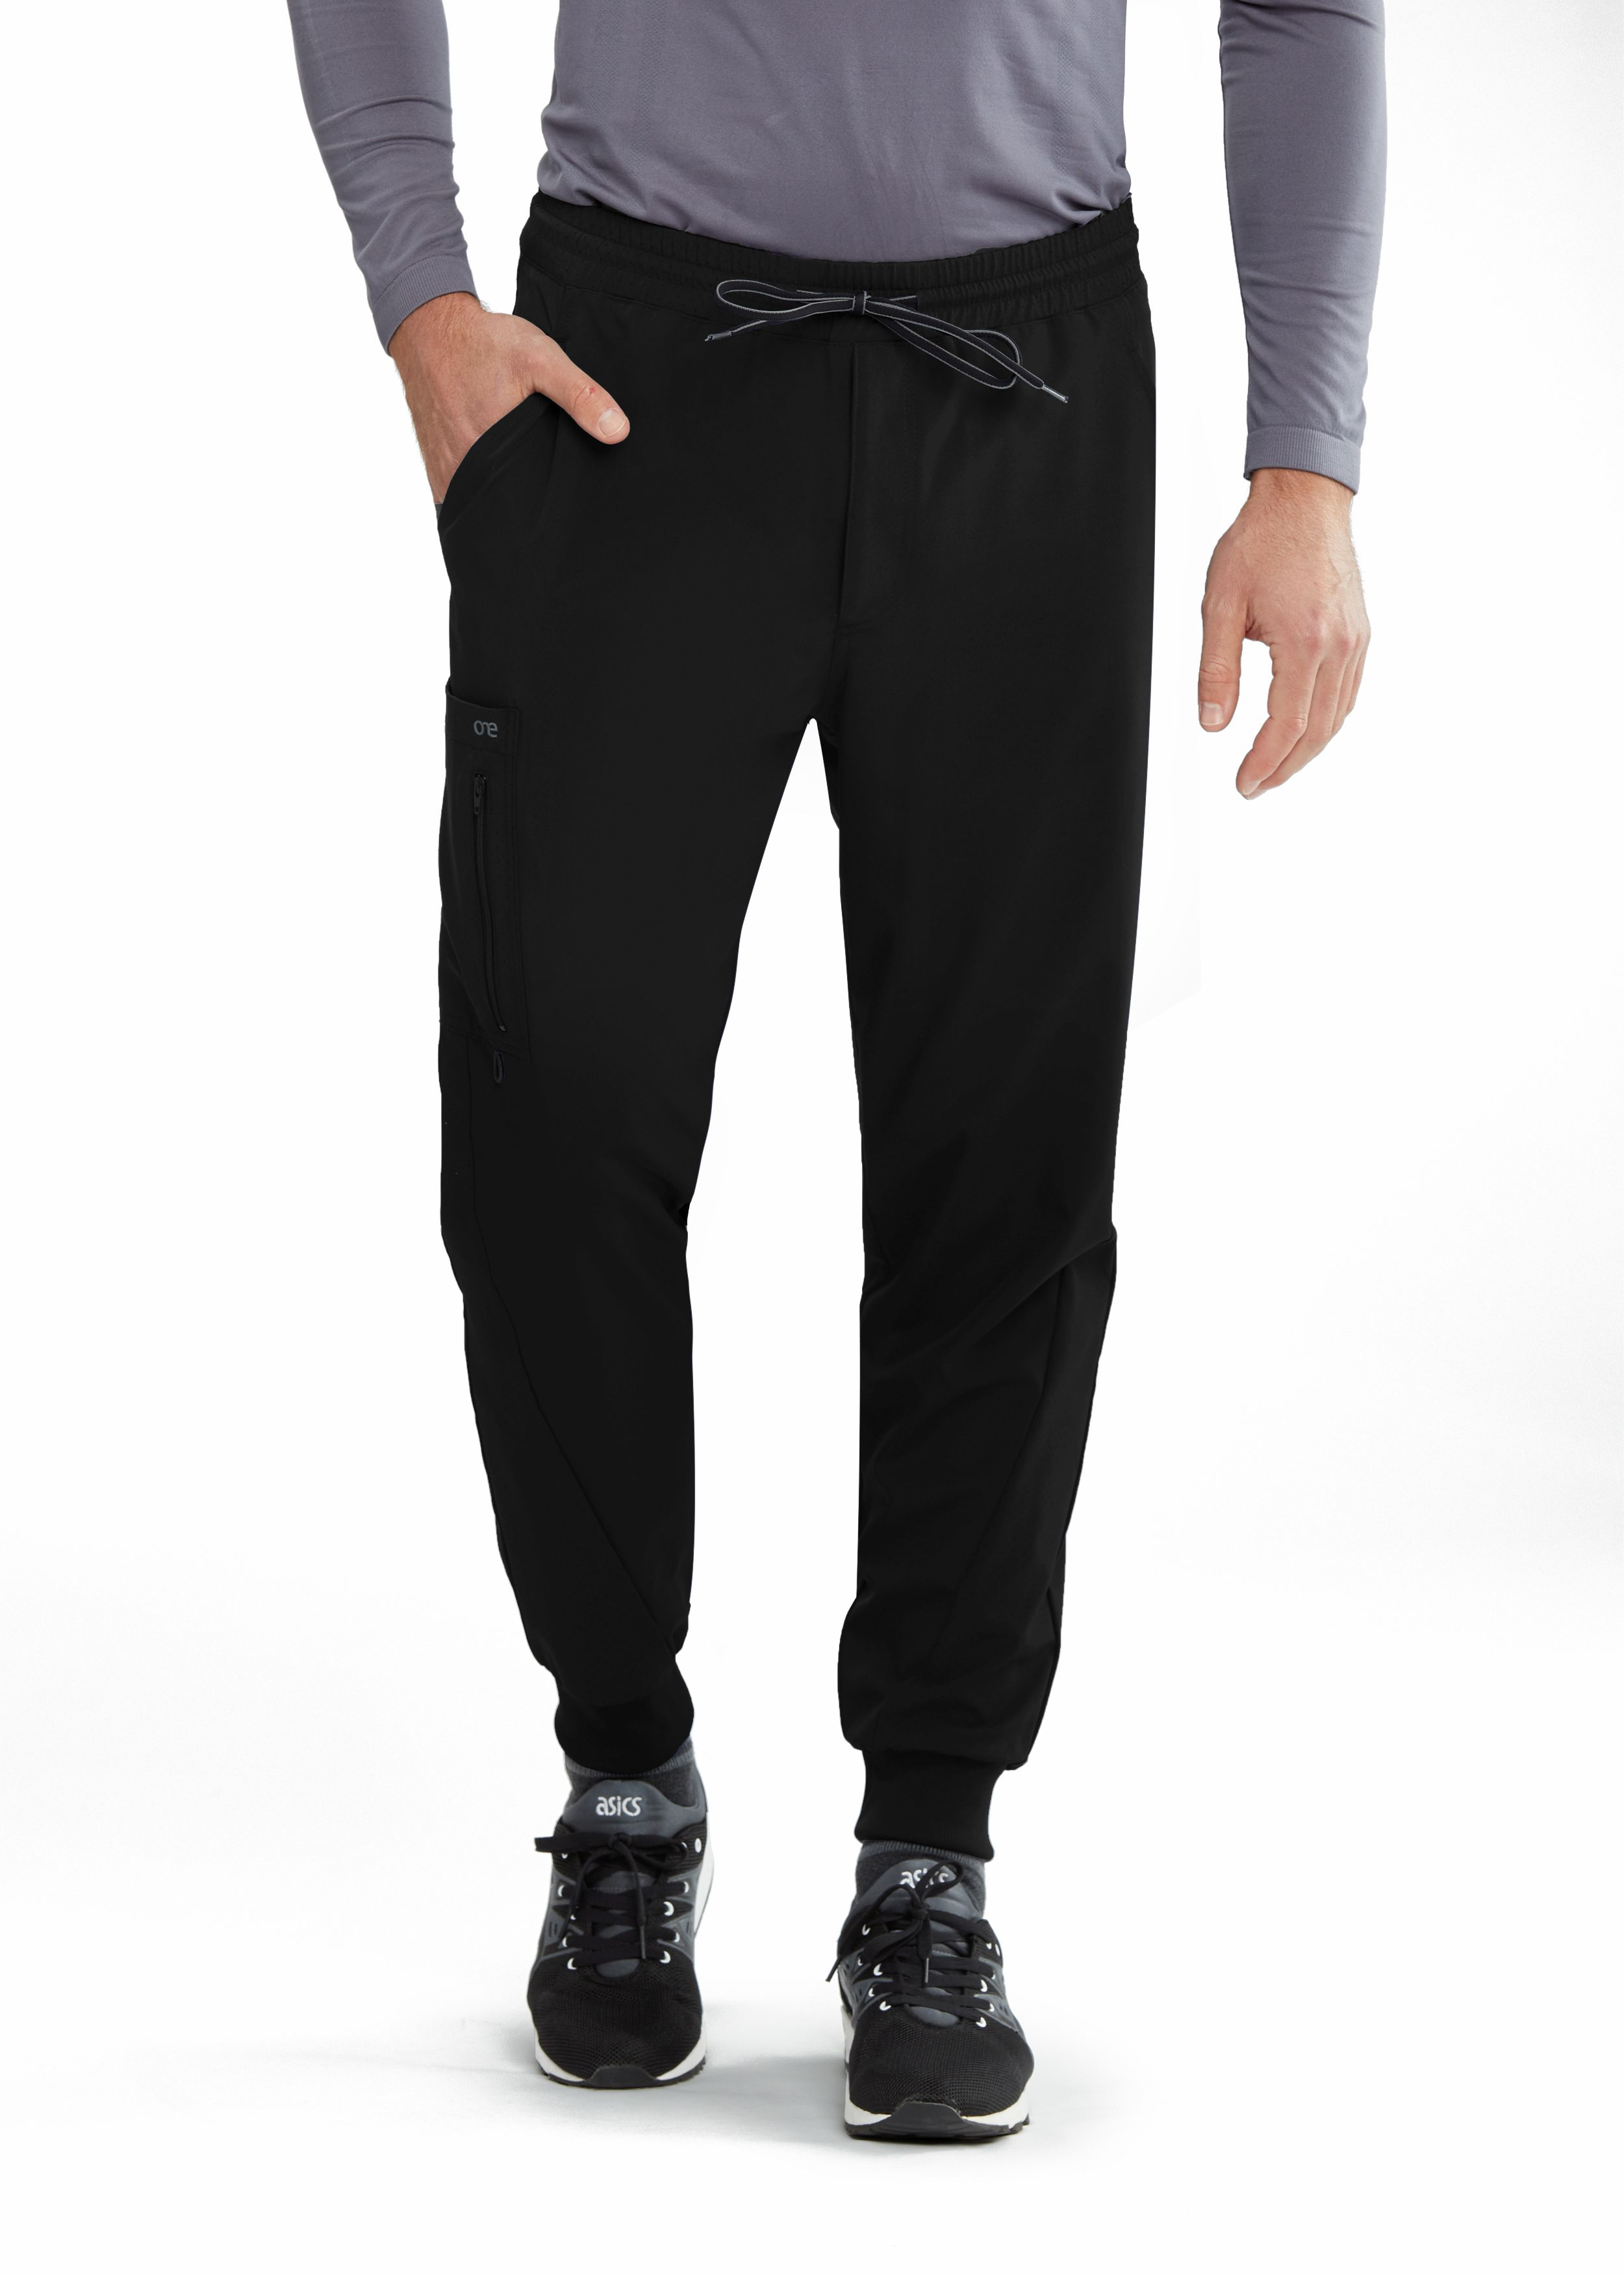 Barco One Men's 6 Pocket Perfect Cargo Jogger-Barco One